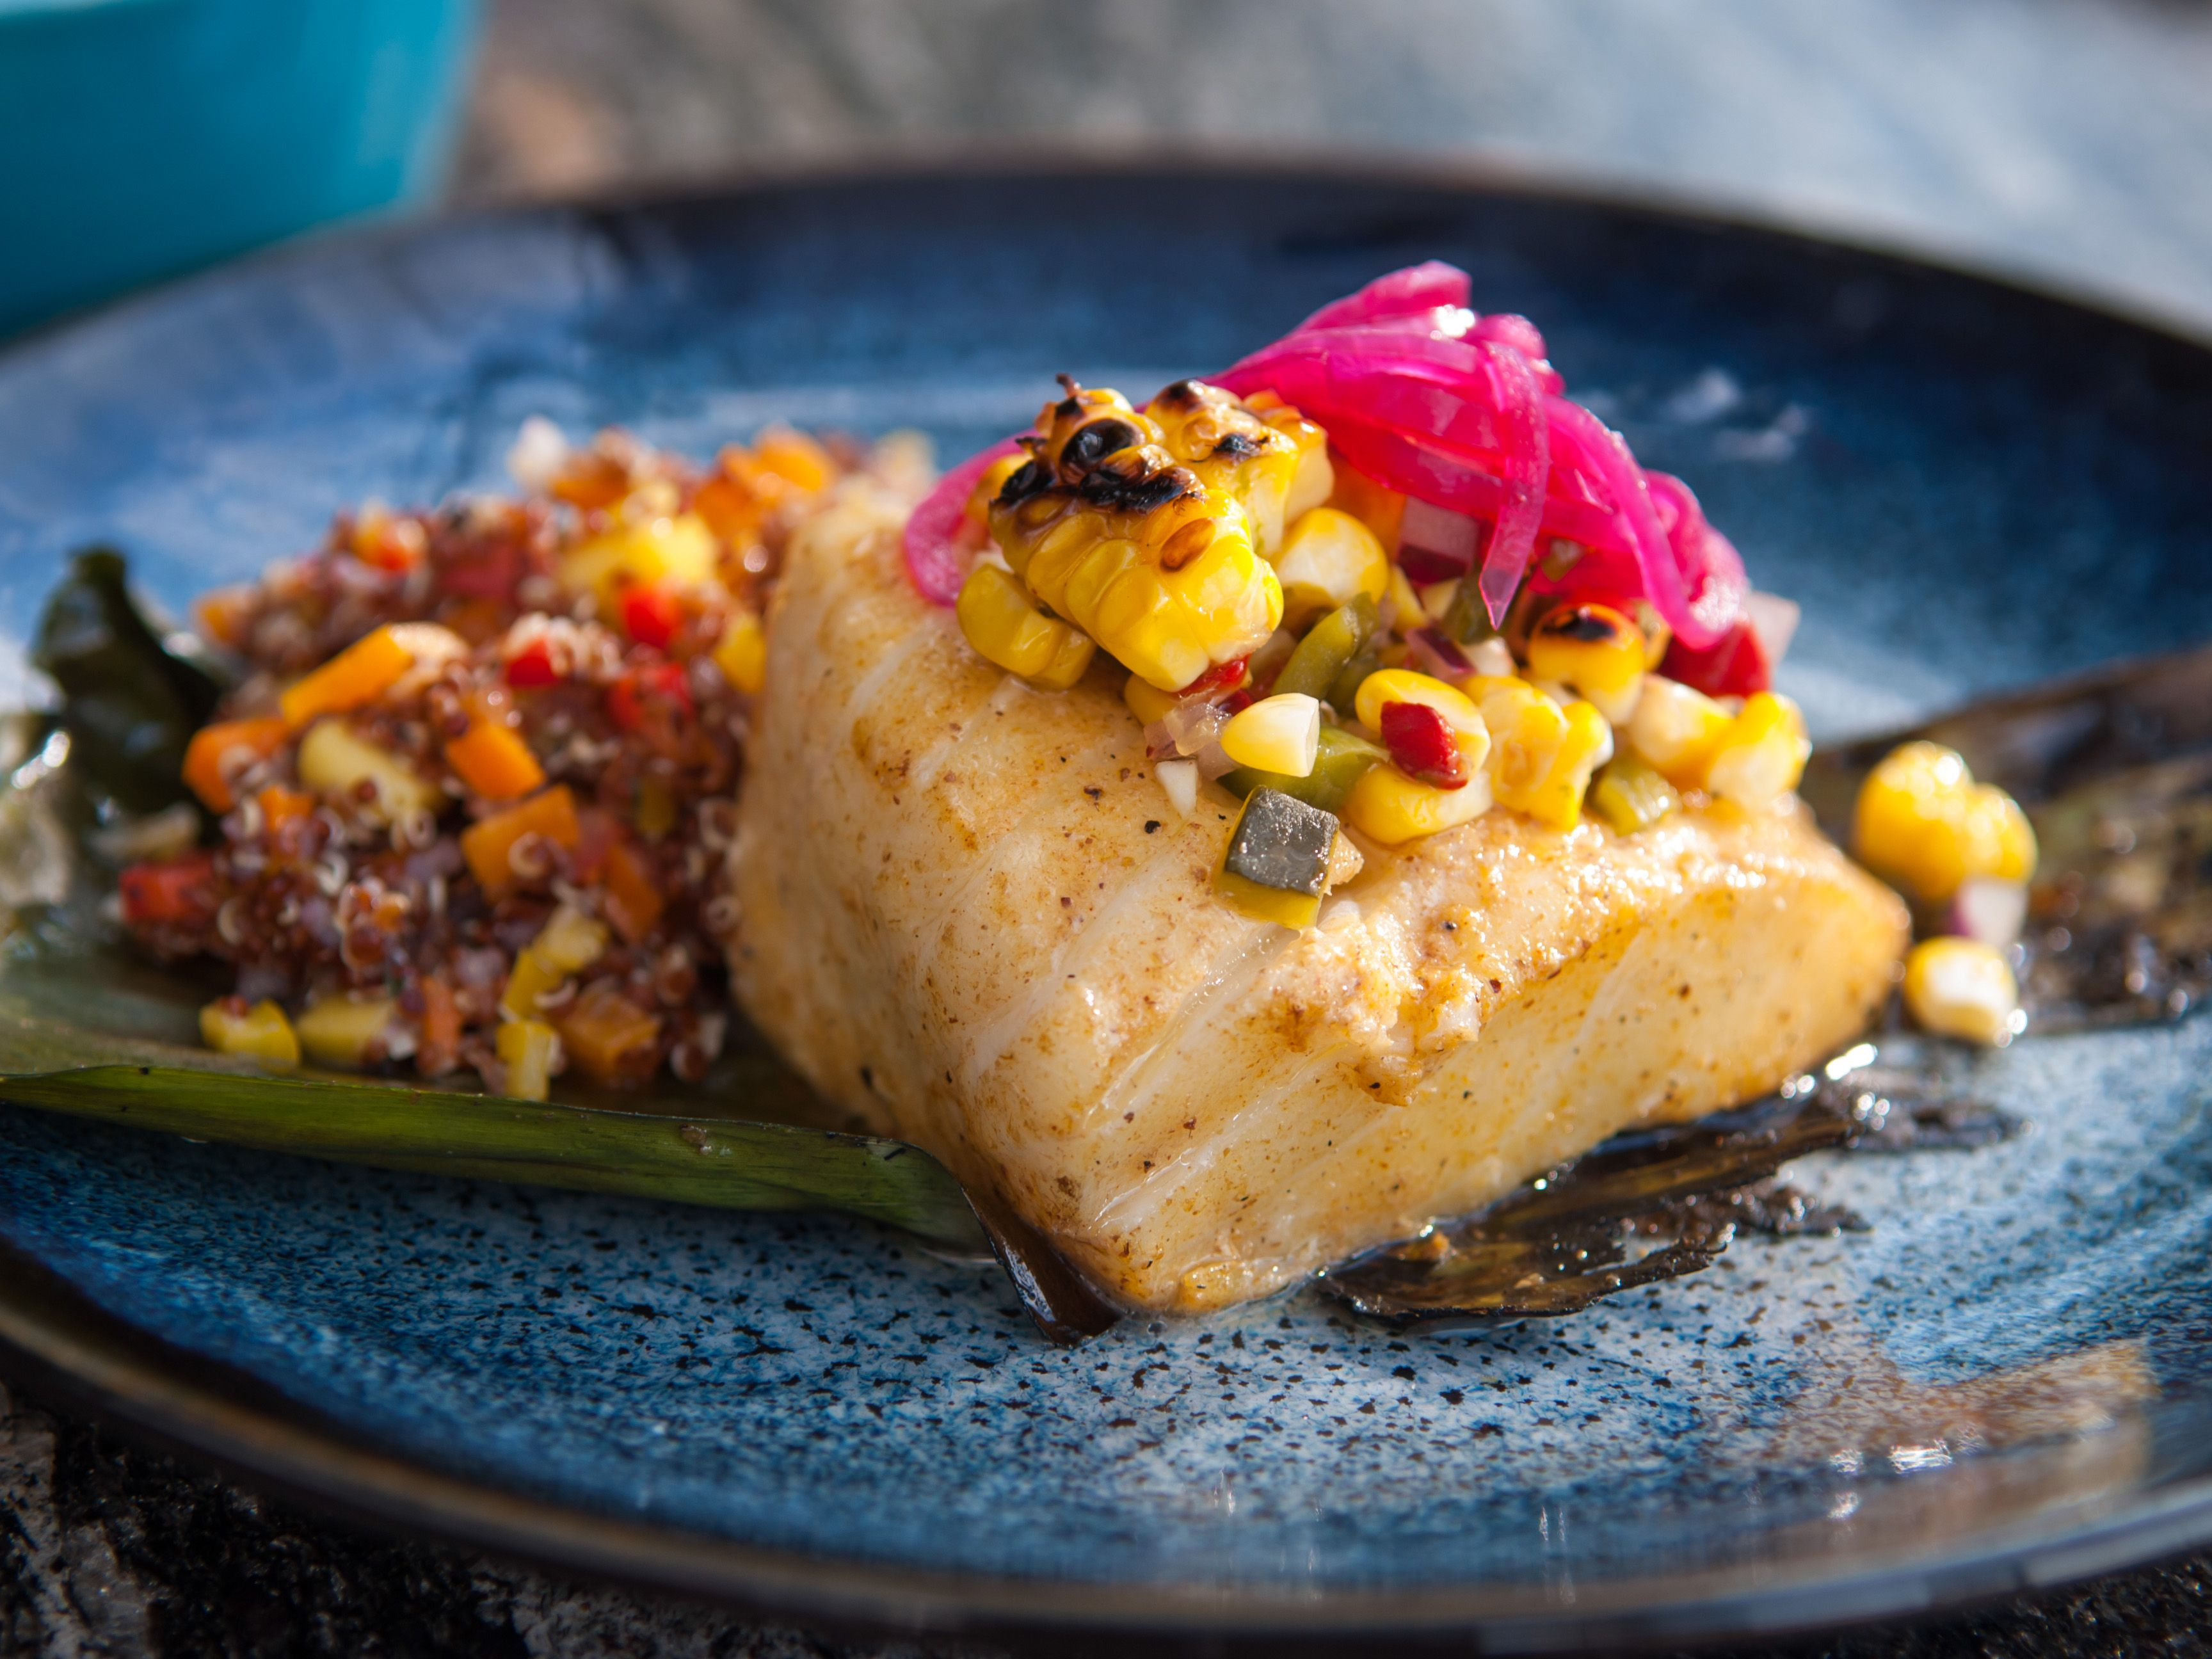 Banana leaf wrapped chilean seabass with pickled red onions recipe food forumfinder Image collections